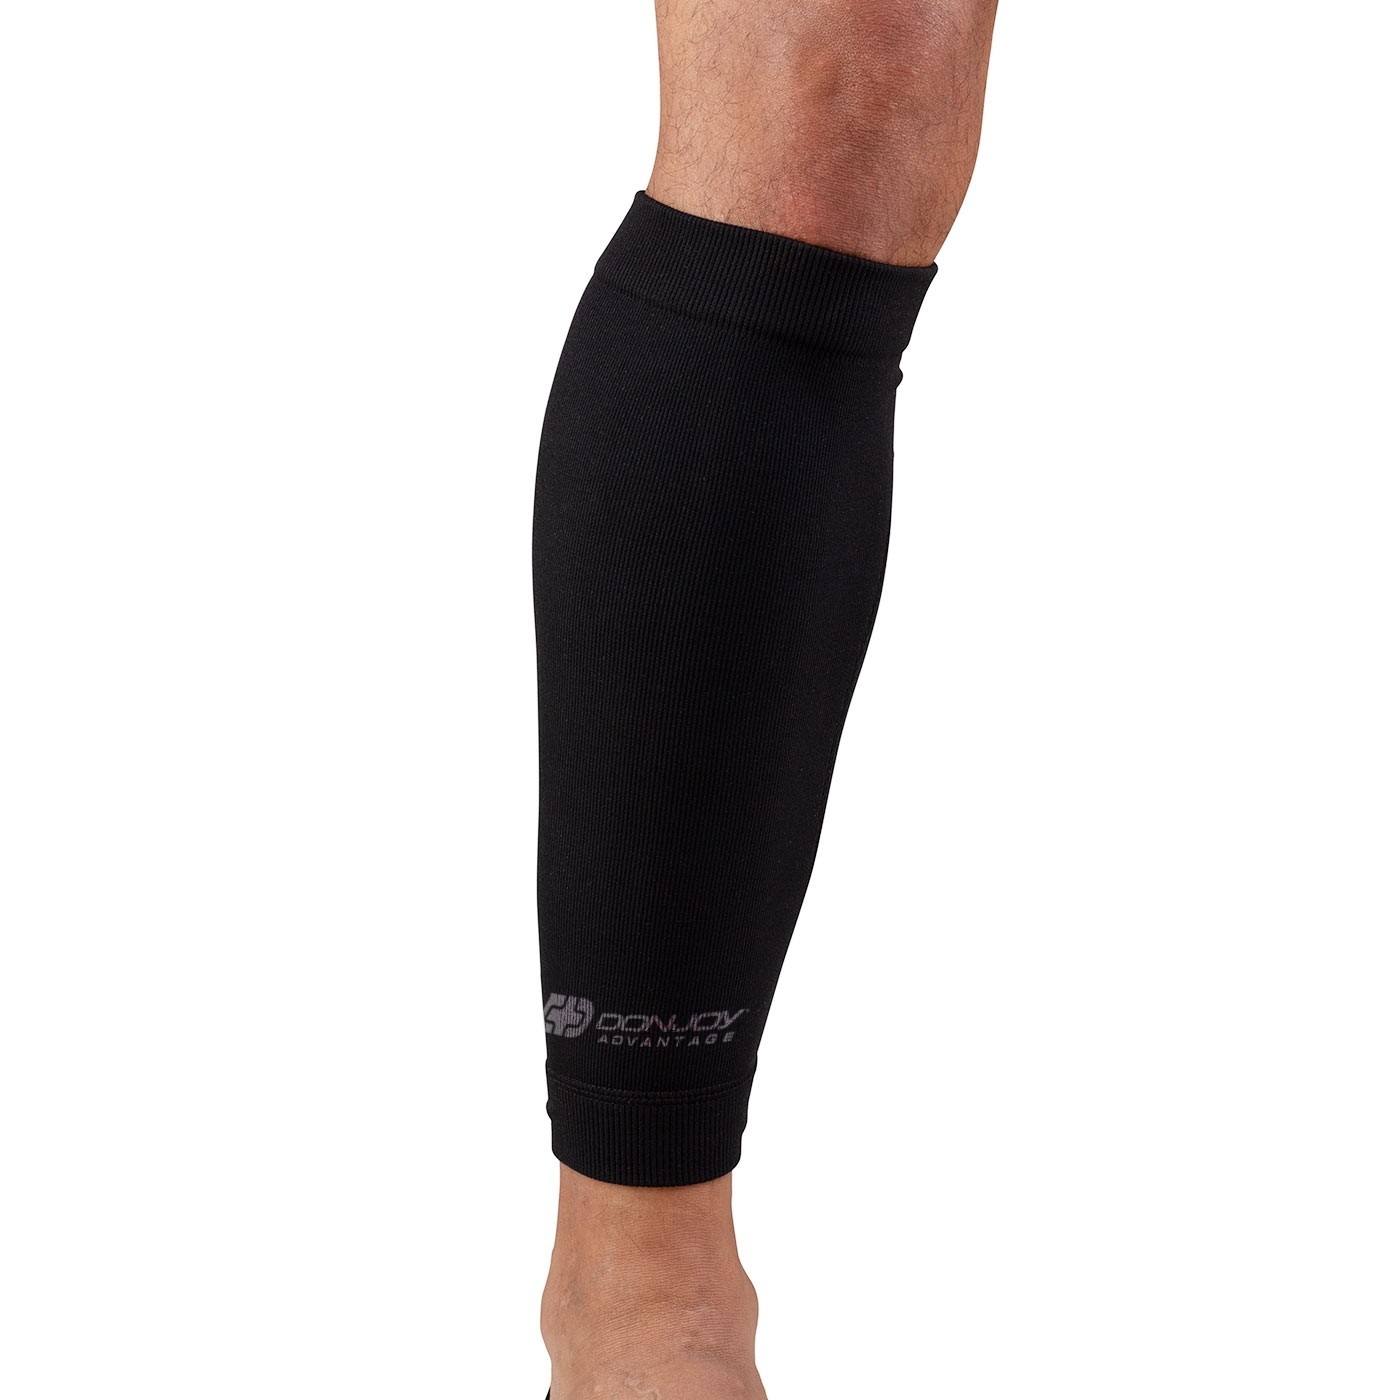 DonJoy® Advantage Performance Knit Compression Calf Sleeves - Pair